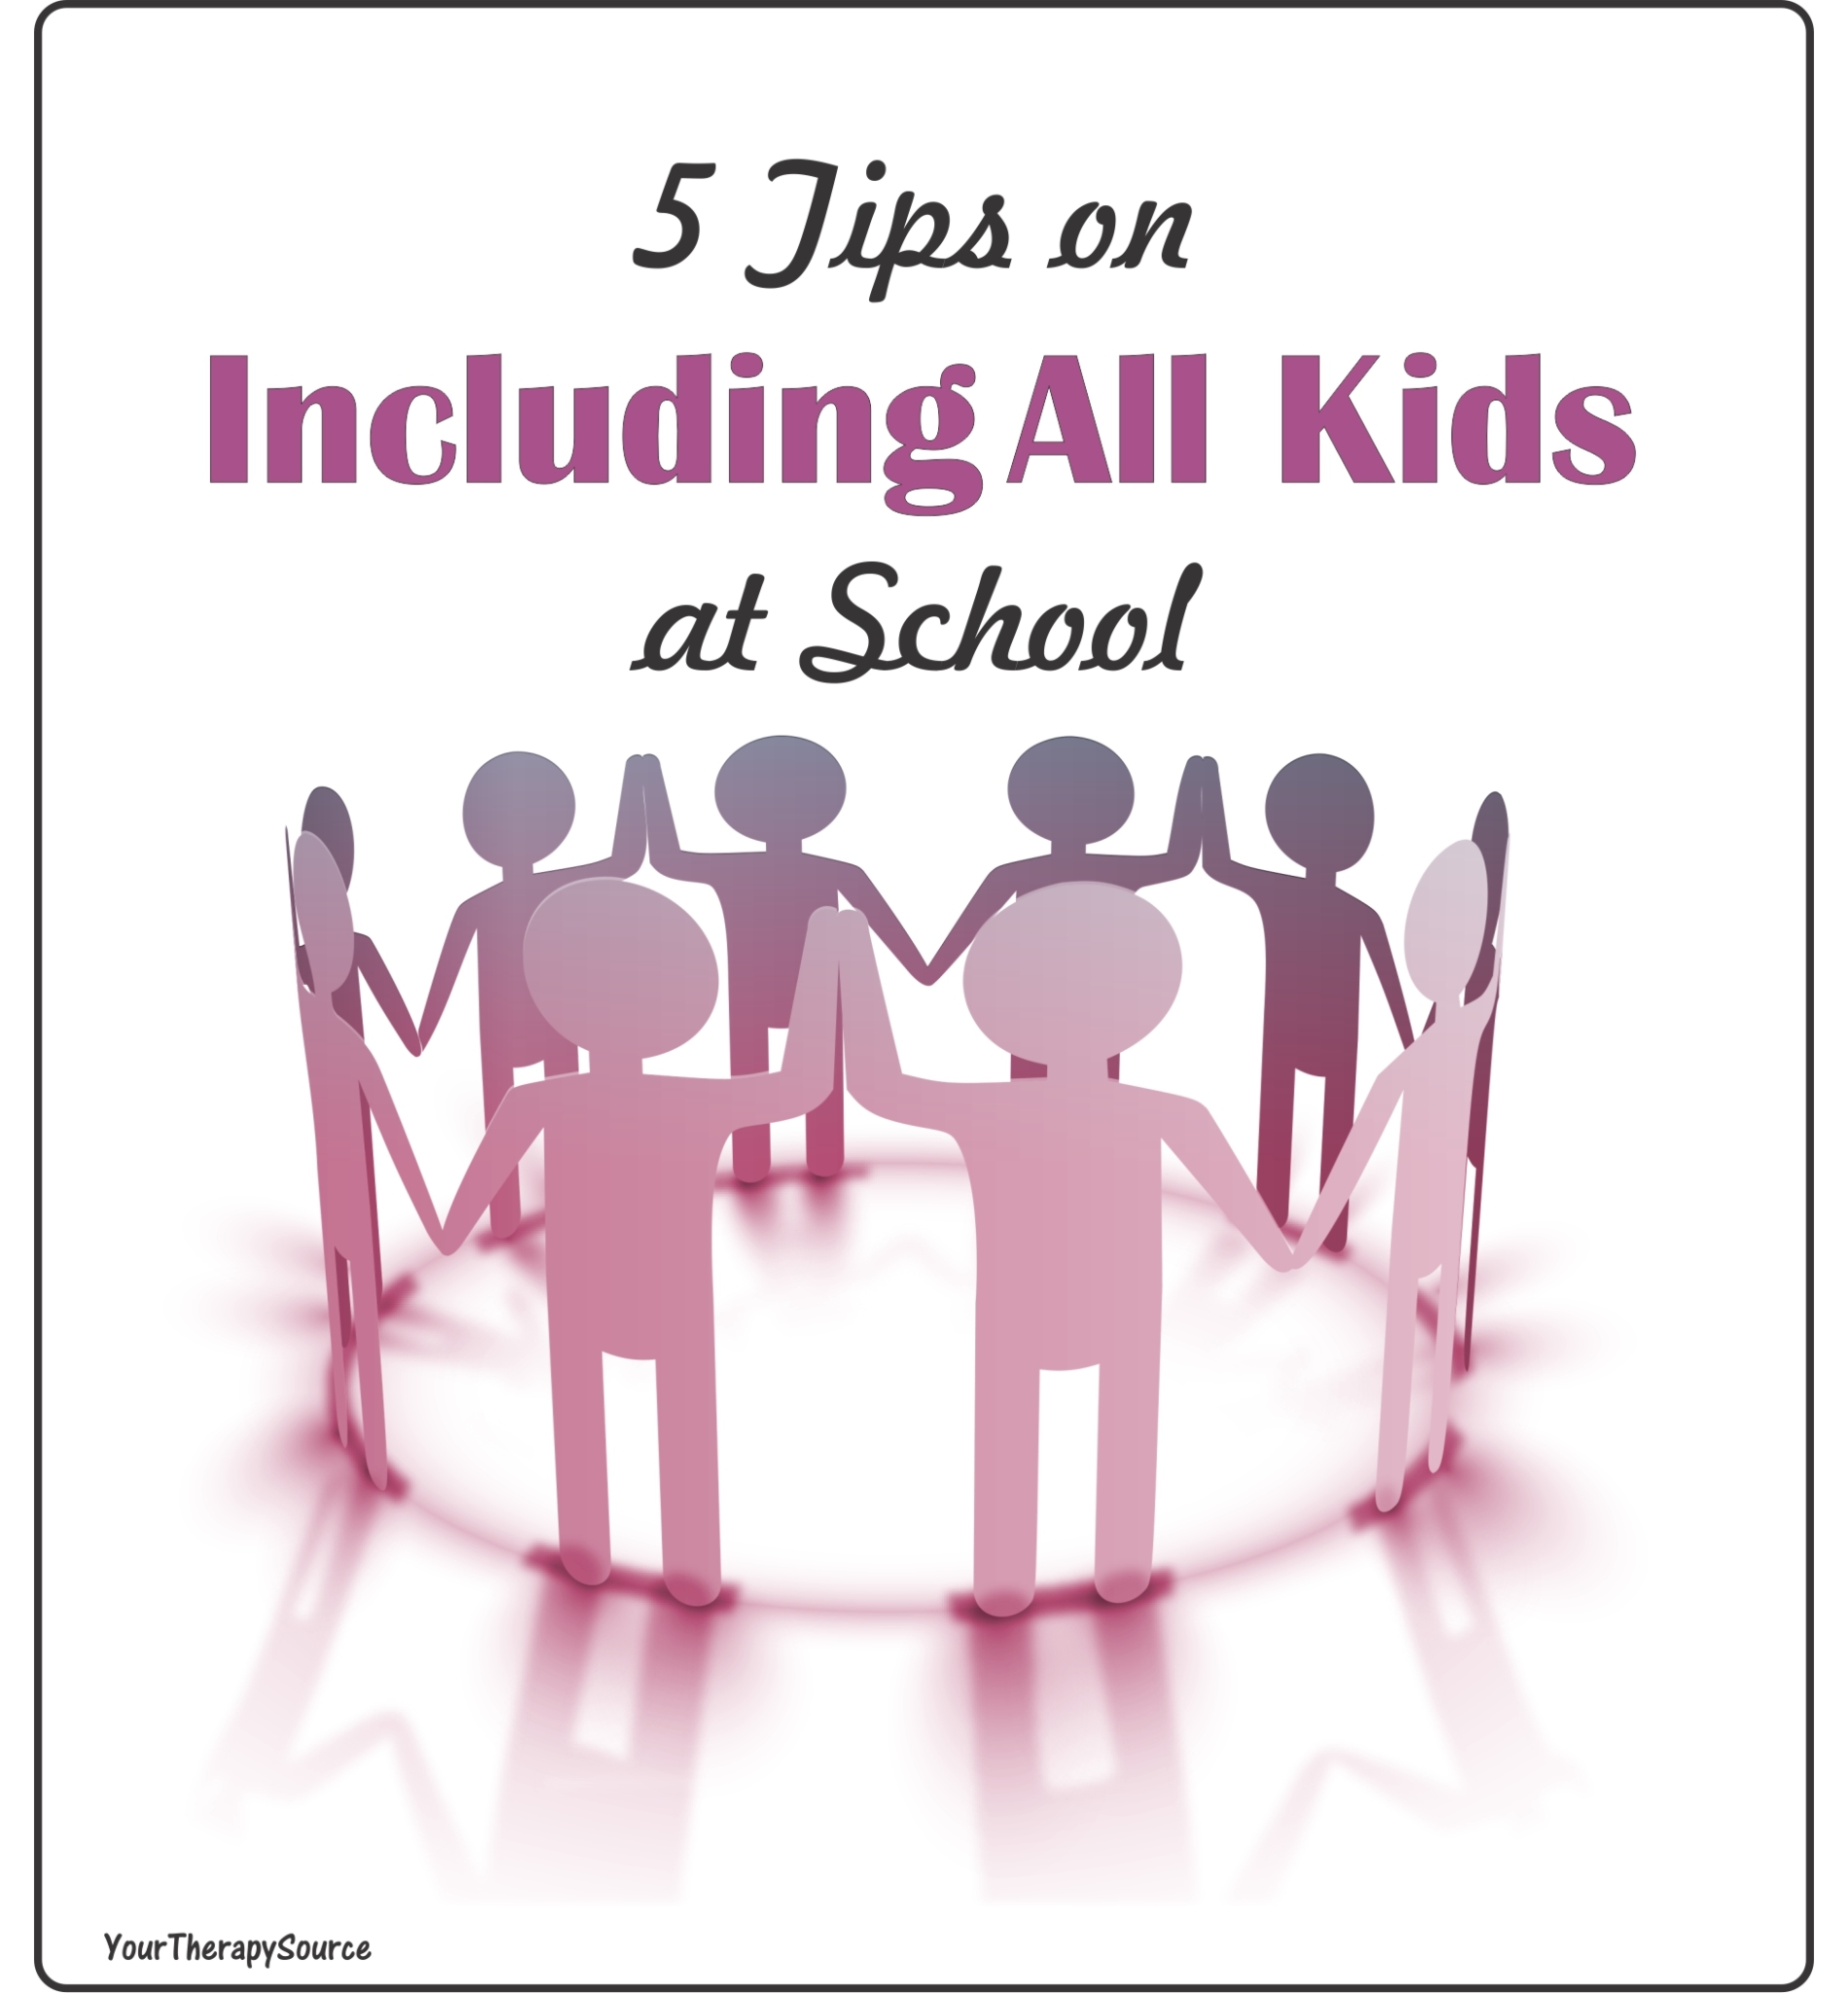 5 tips on including all kids at school from www.YourTherapySource.com